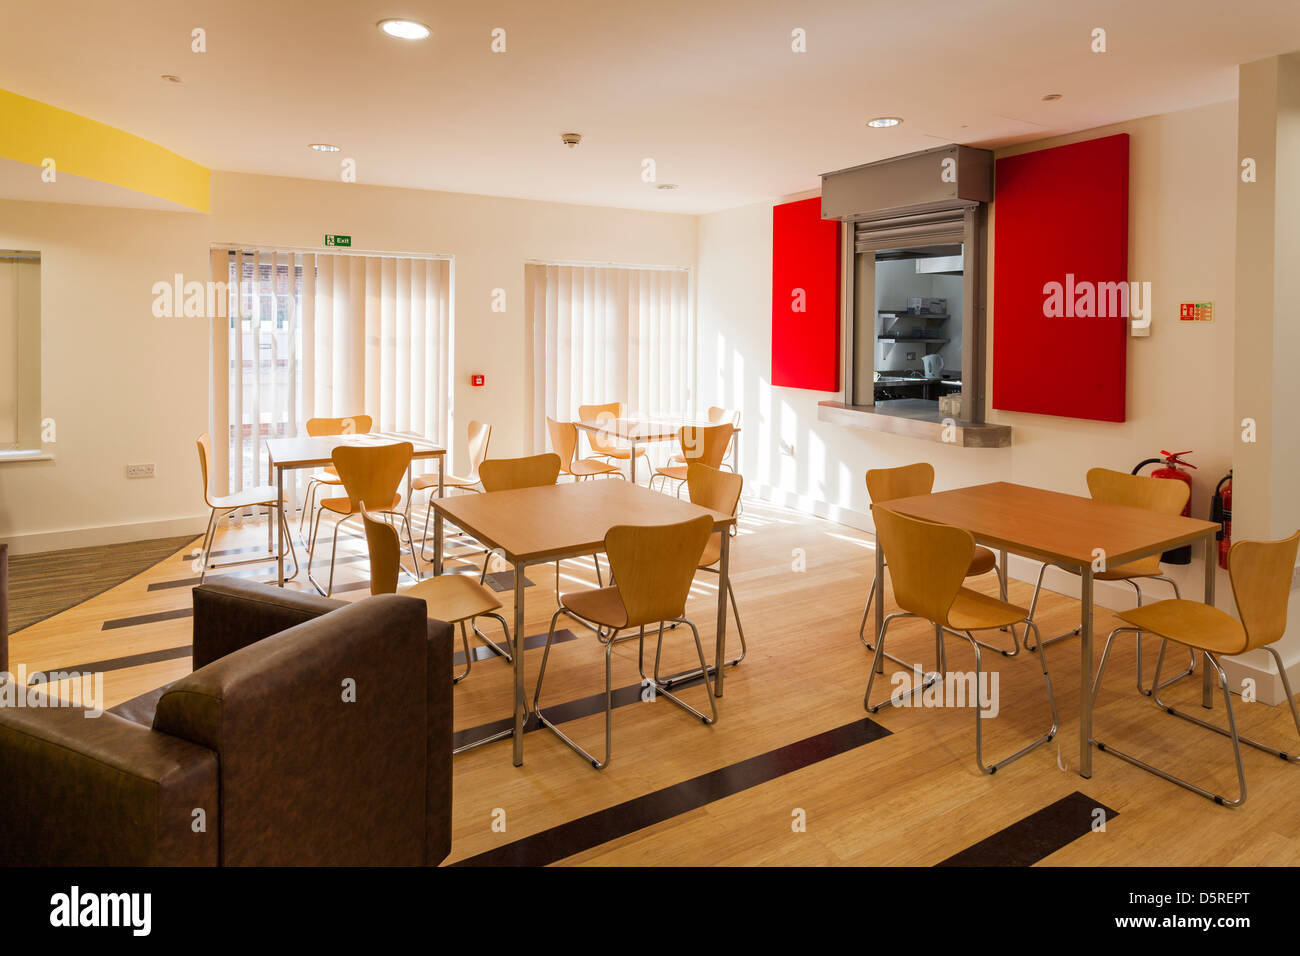 shared dining area with hatch to kitchen  at Damascus House and Emmaus House, Salisbury - Stock Image